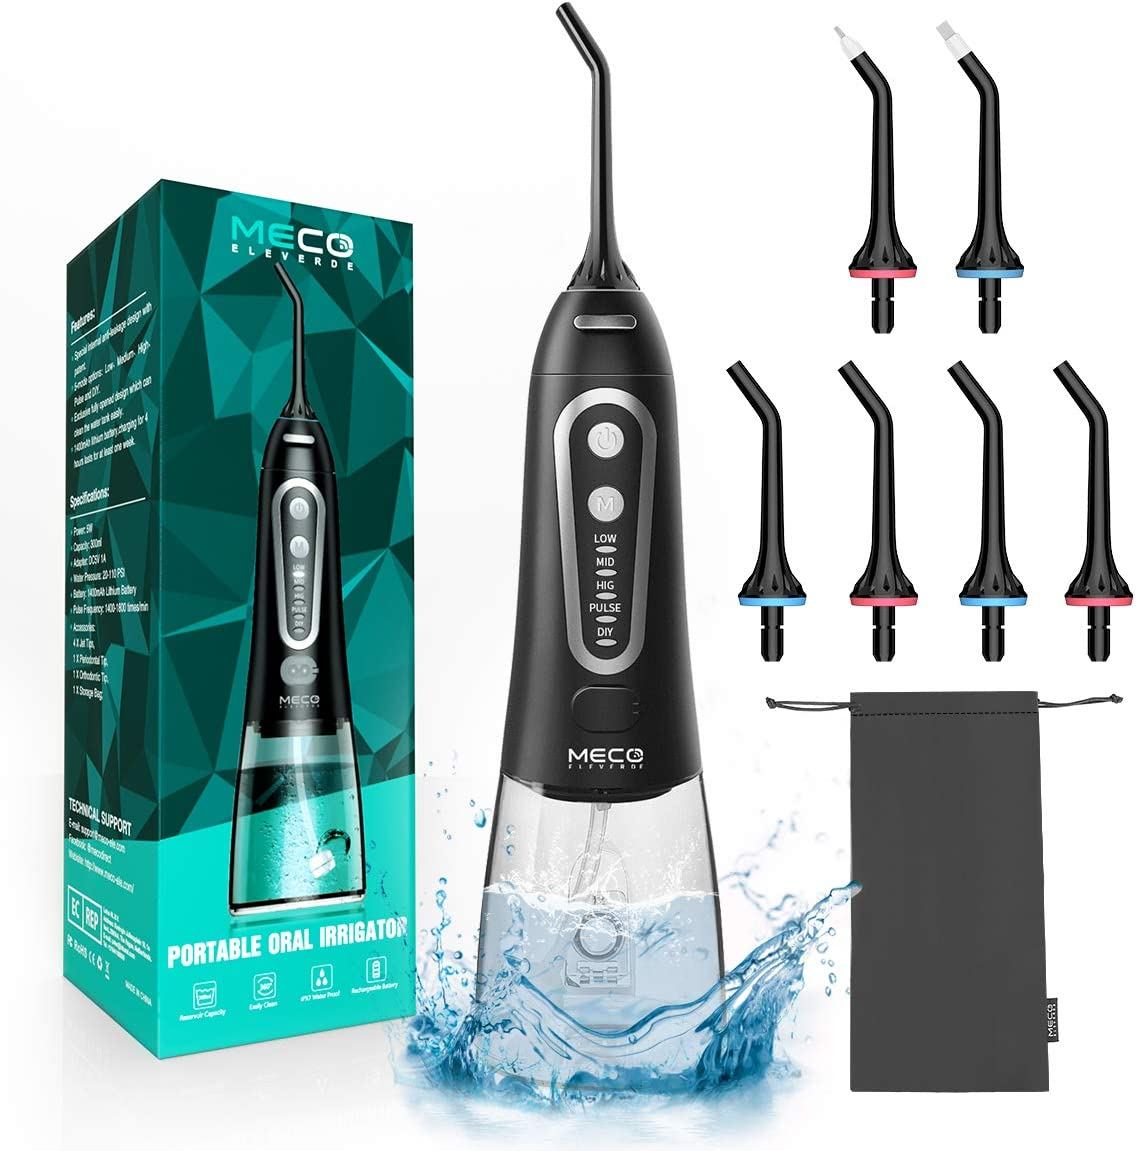 Water Flossers for Teeth, MECO Cordless Portable Water Pick Teeth Cleaner 300ML, 5 Modes and 6 Jet Tips, IPX8 Waterproof, USB Charged for 25-Days Use, Oral Irrigator for Travel, Home, Office